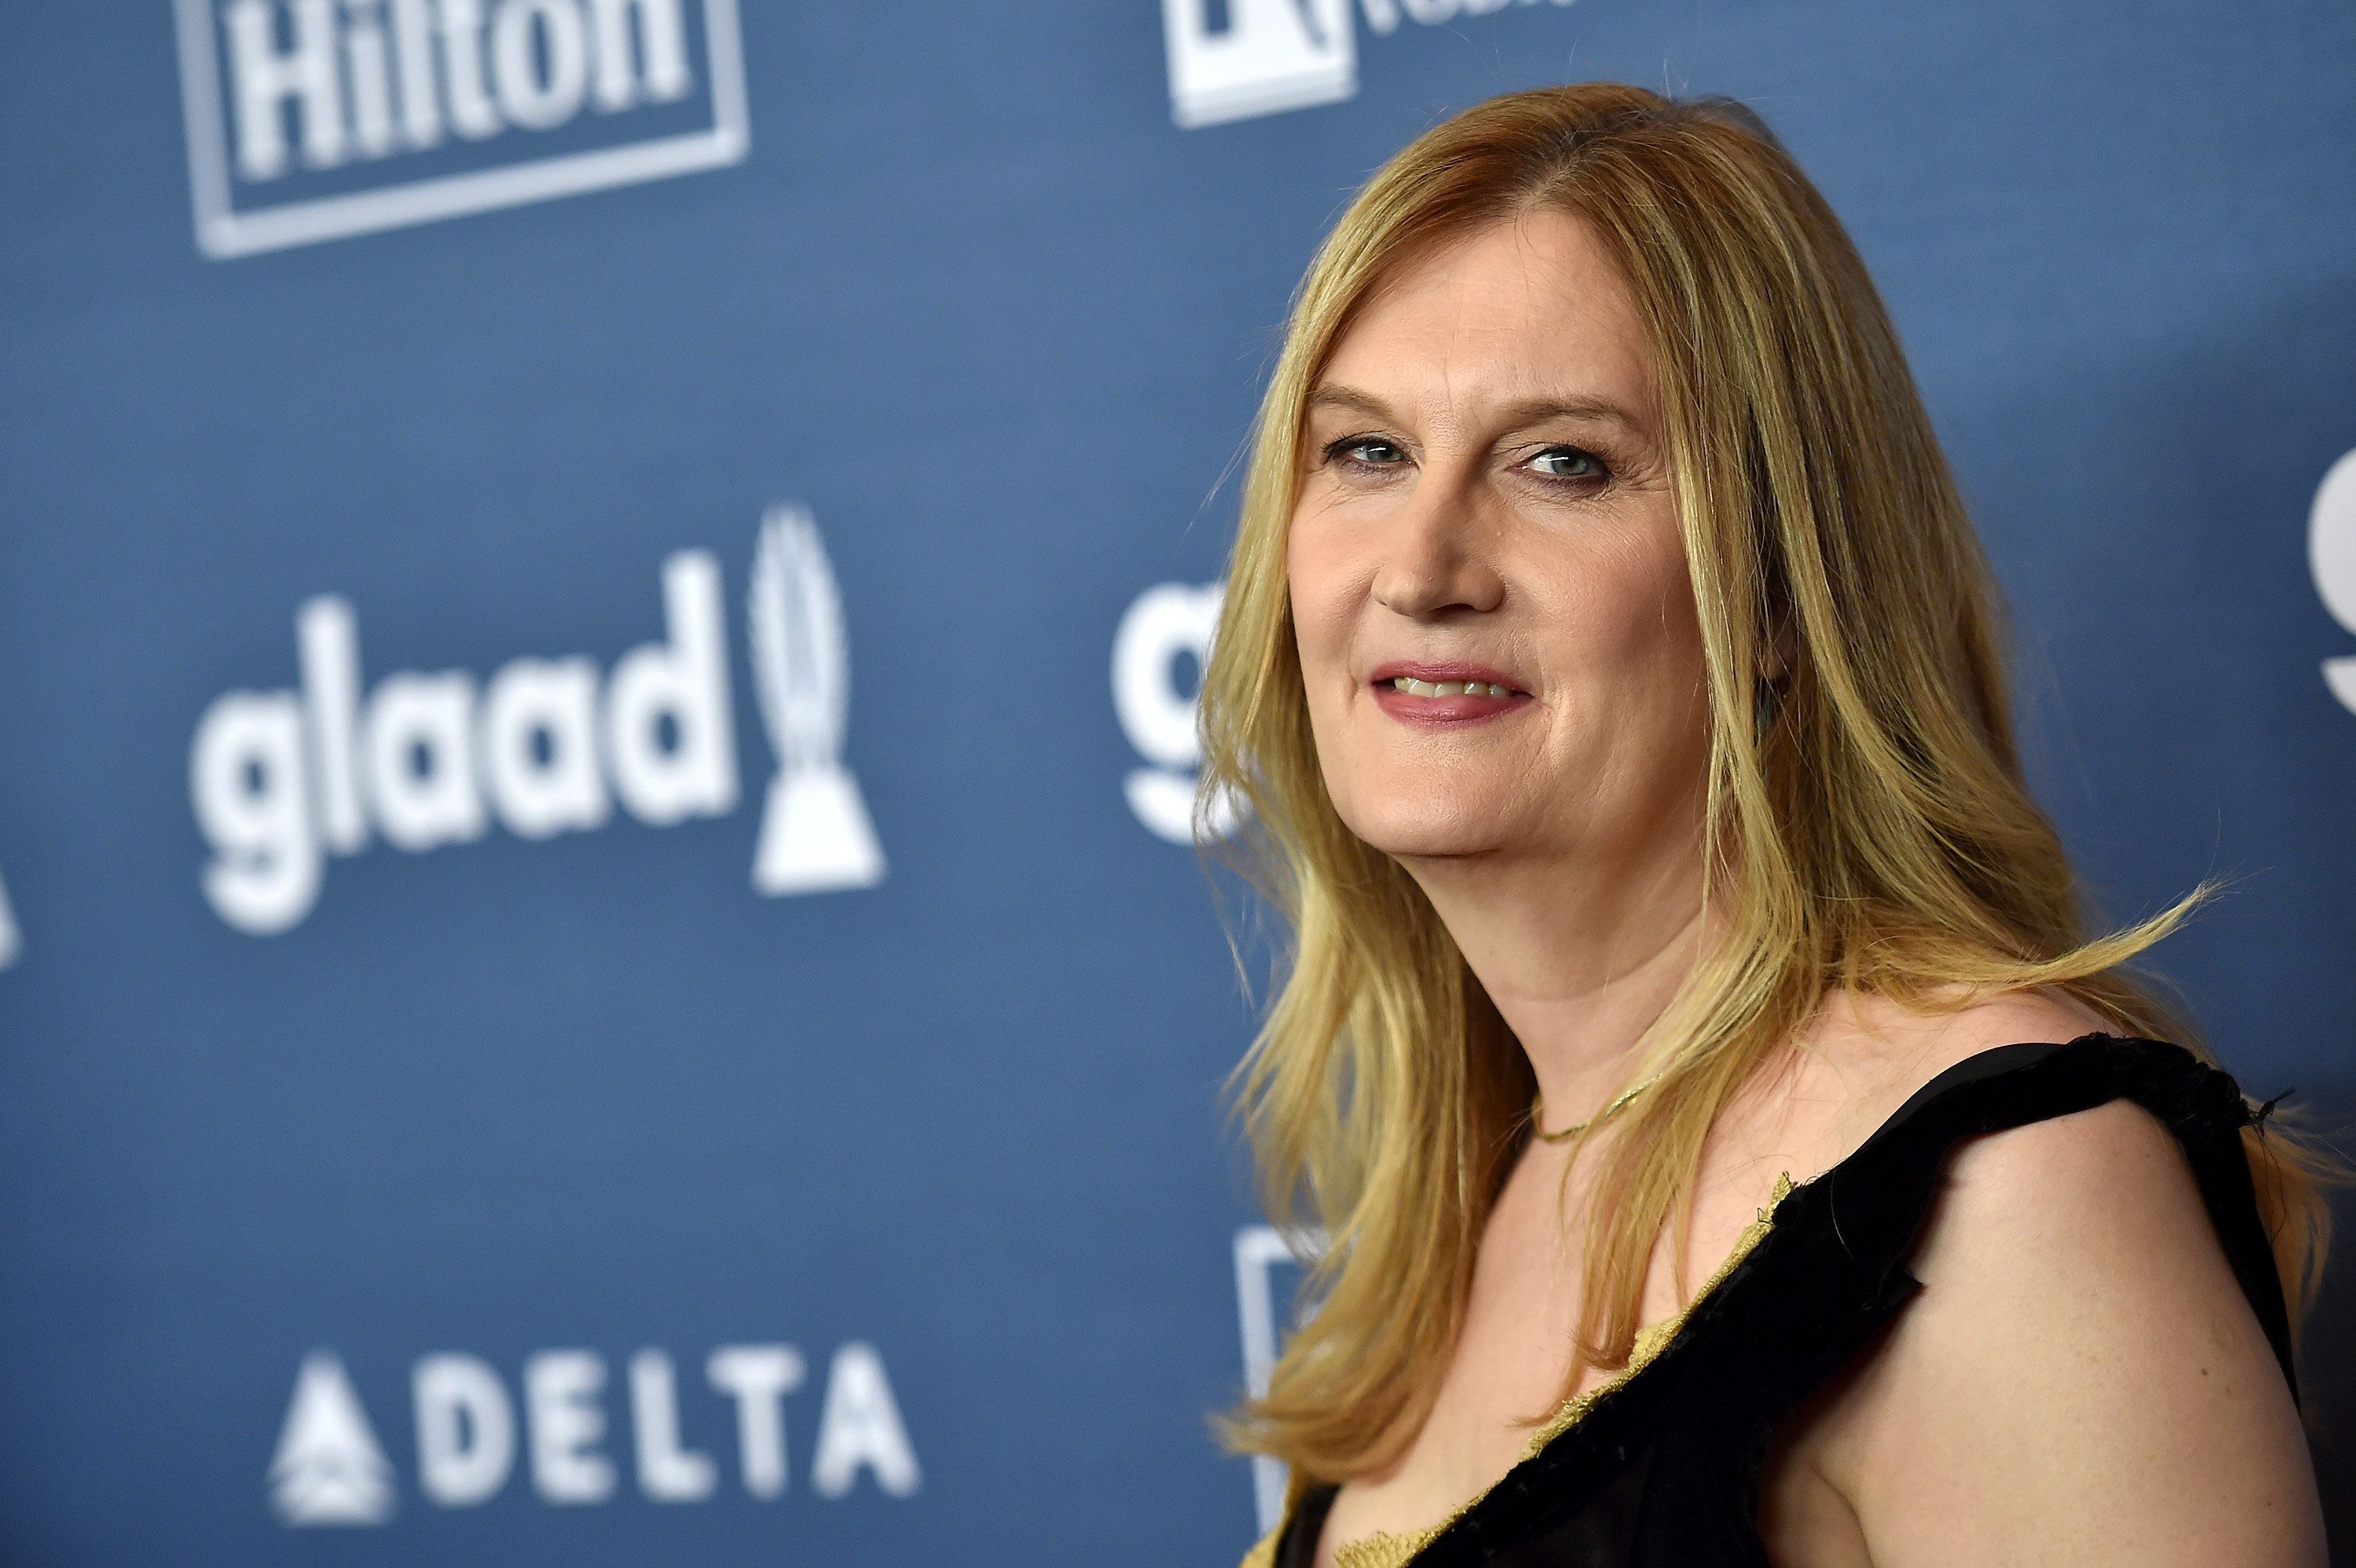 NEW YORK, NY - MAY 14:  GLAAD Board of Directors member Jenny Boylan attends the 27th Annual GLAAD Media Awards in New York on May 14, 2016 in New York City.  (Photo by Dimitrios Kambouris/Getty Images for GLAAD)